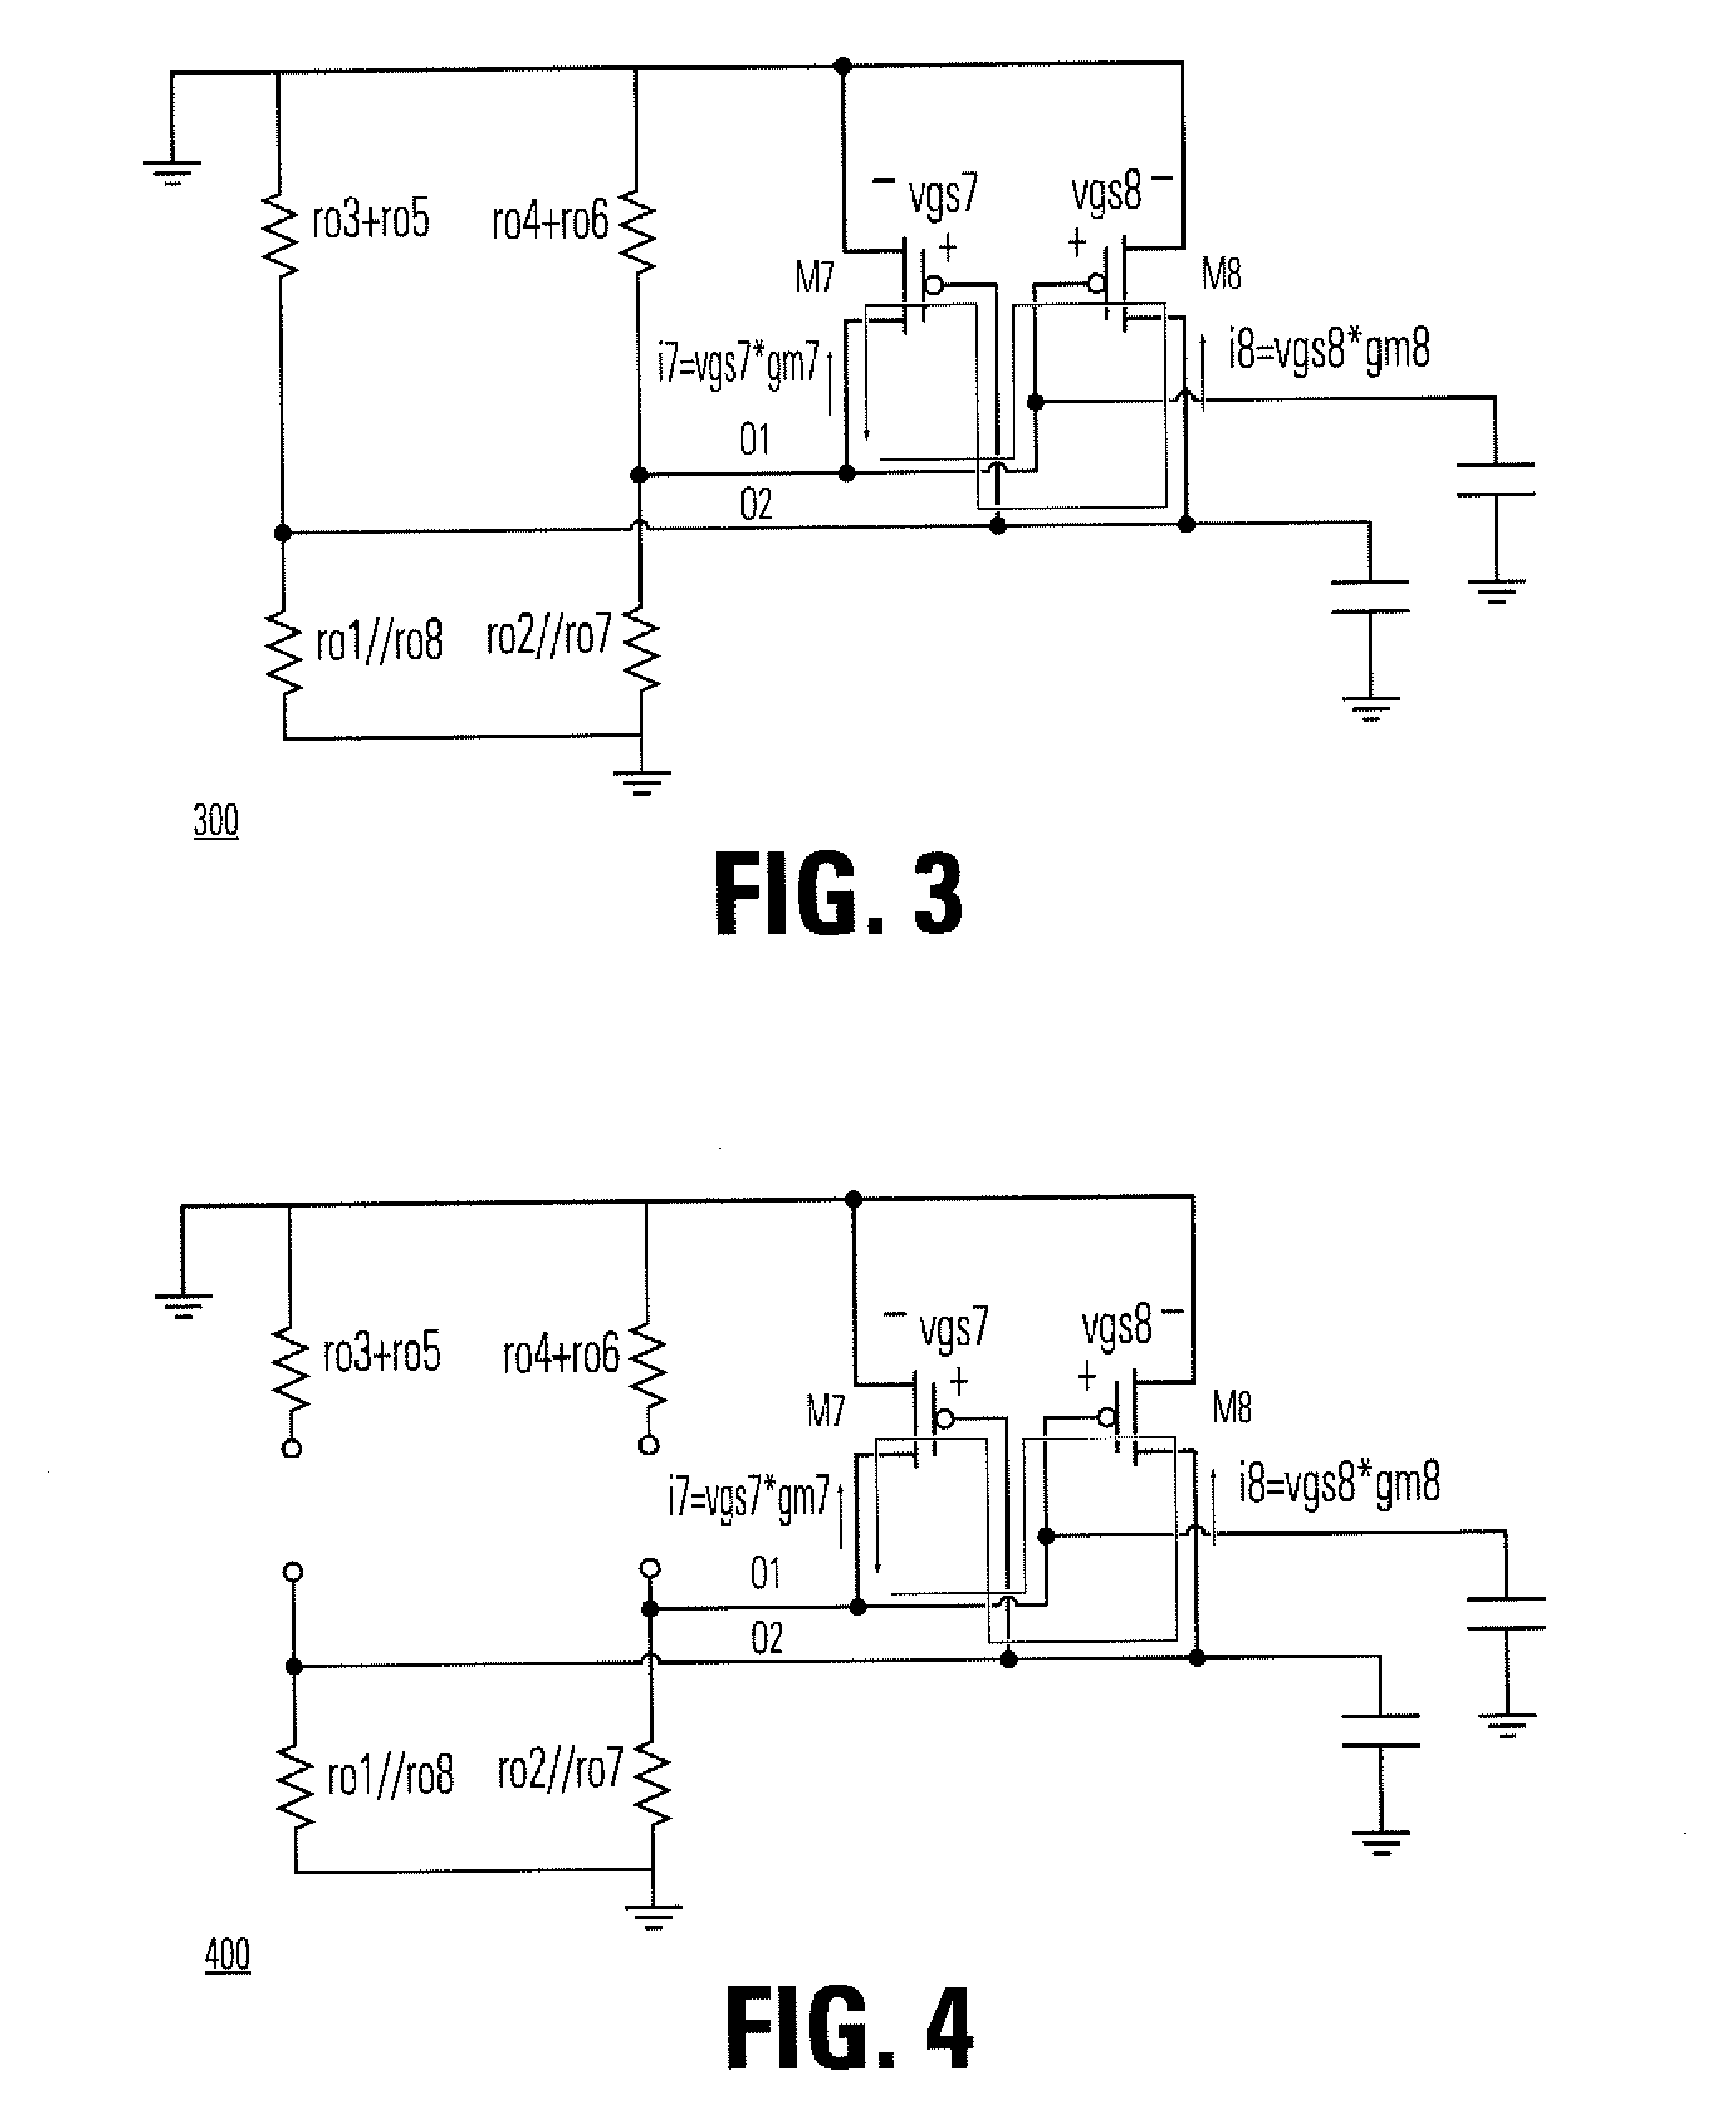 Patent Us7323911 Differential Sense Amplifier Circuit And Method Current Detection Part Diagram Amplifiercircuit Drawing